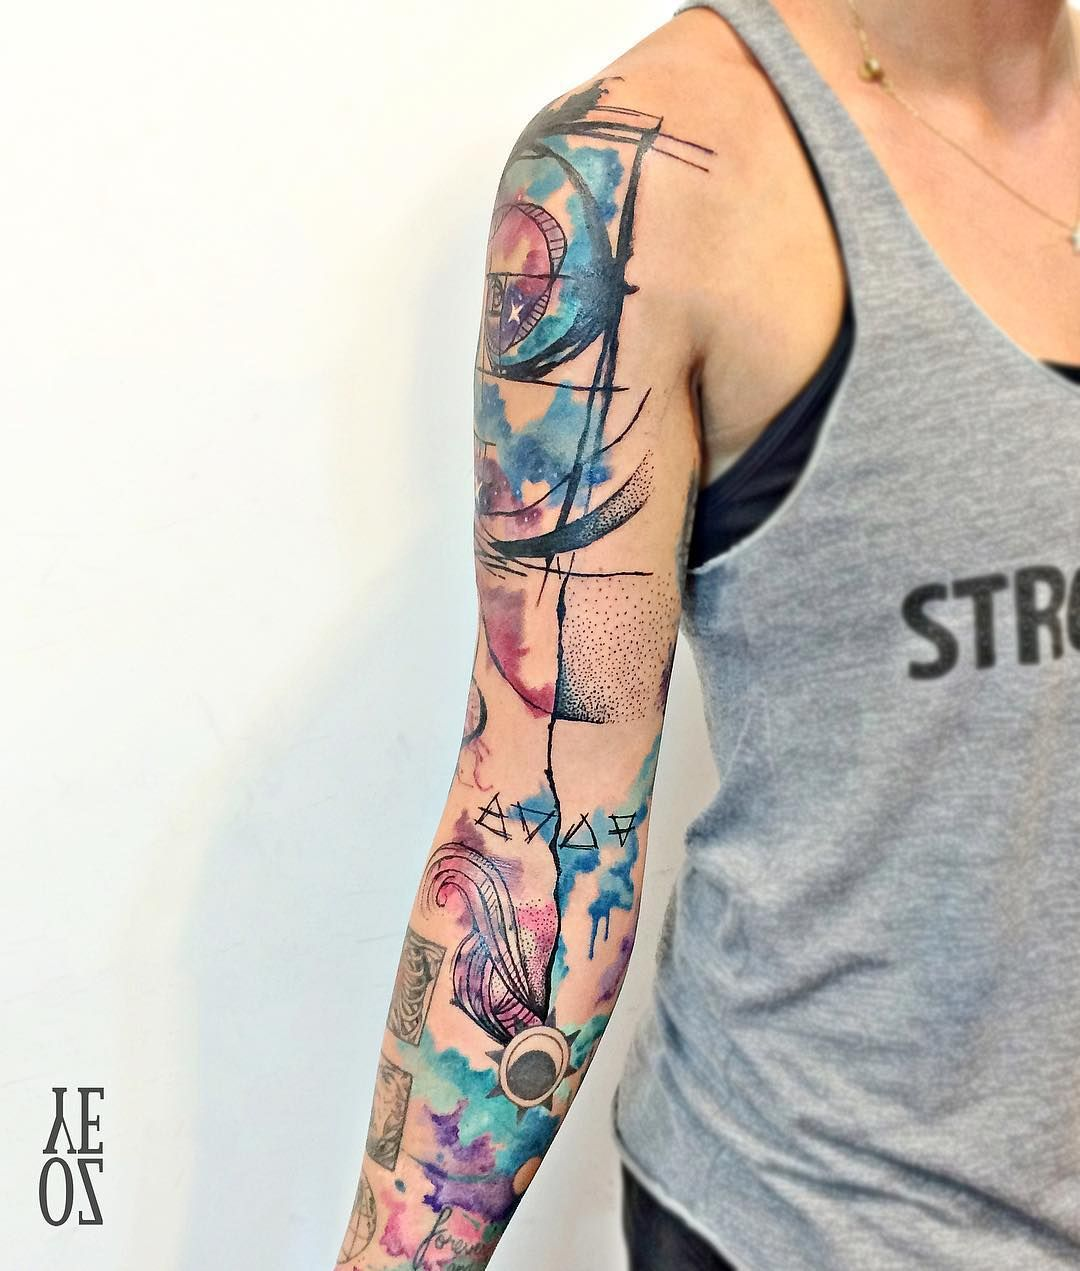 Yeliz Ozcan Watercolor Sketch Tattoo Full Sleeve Tattoos